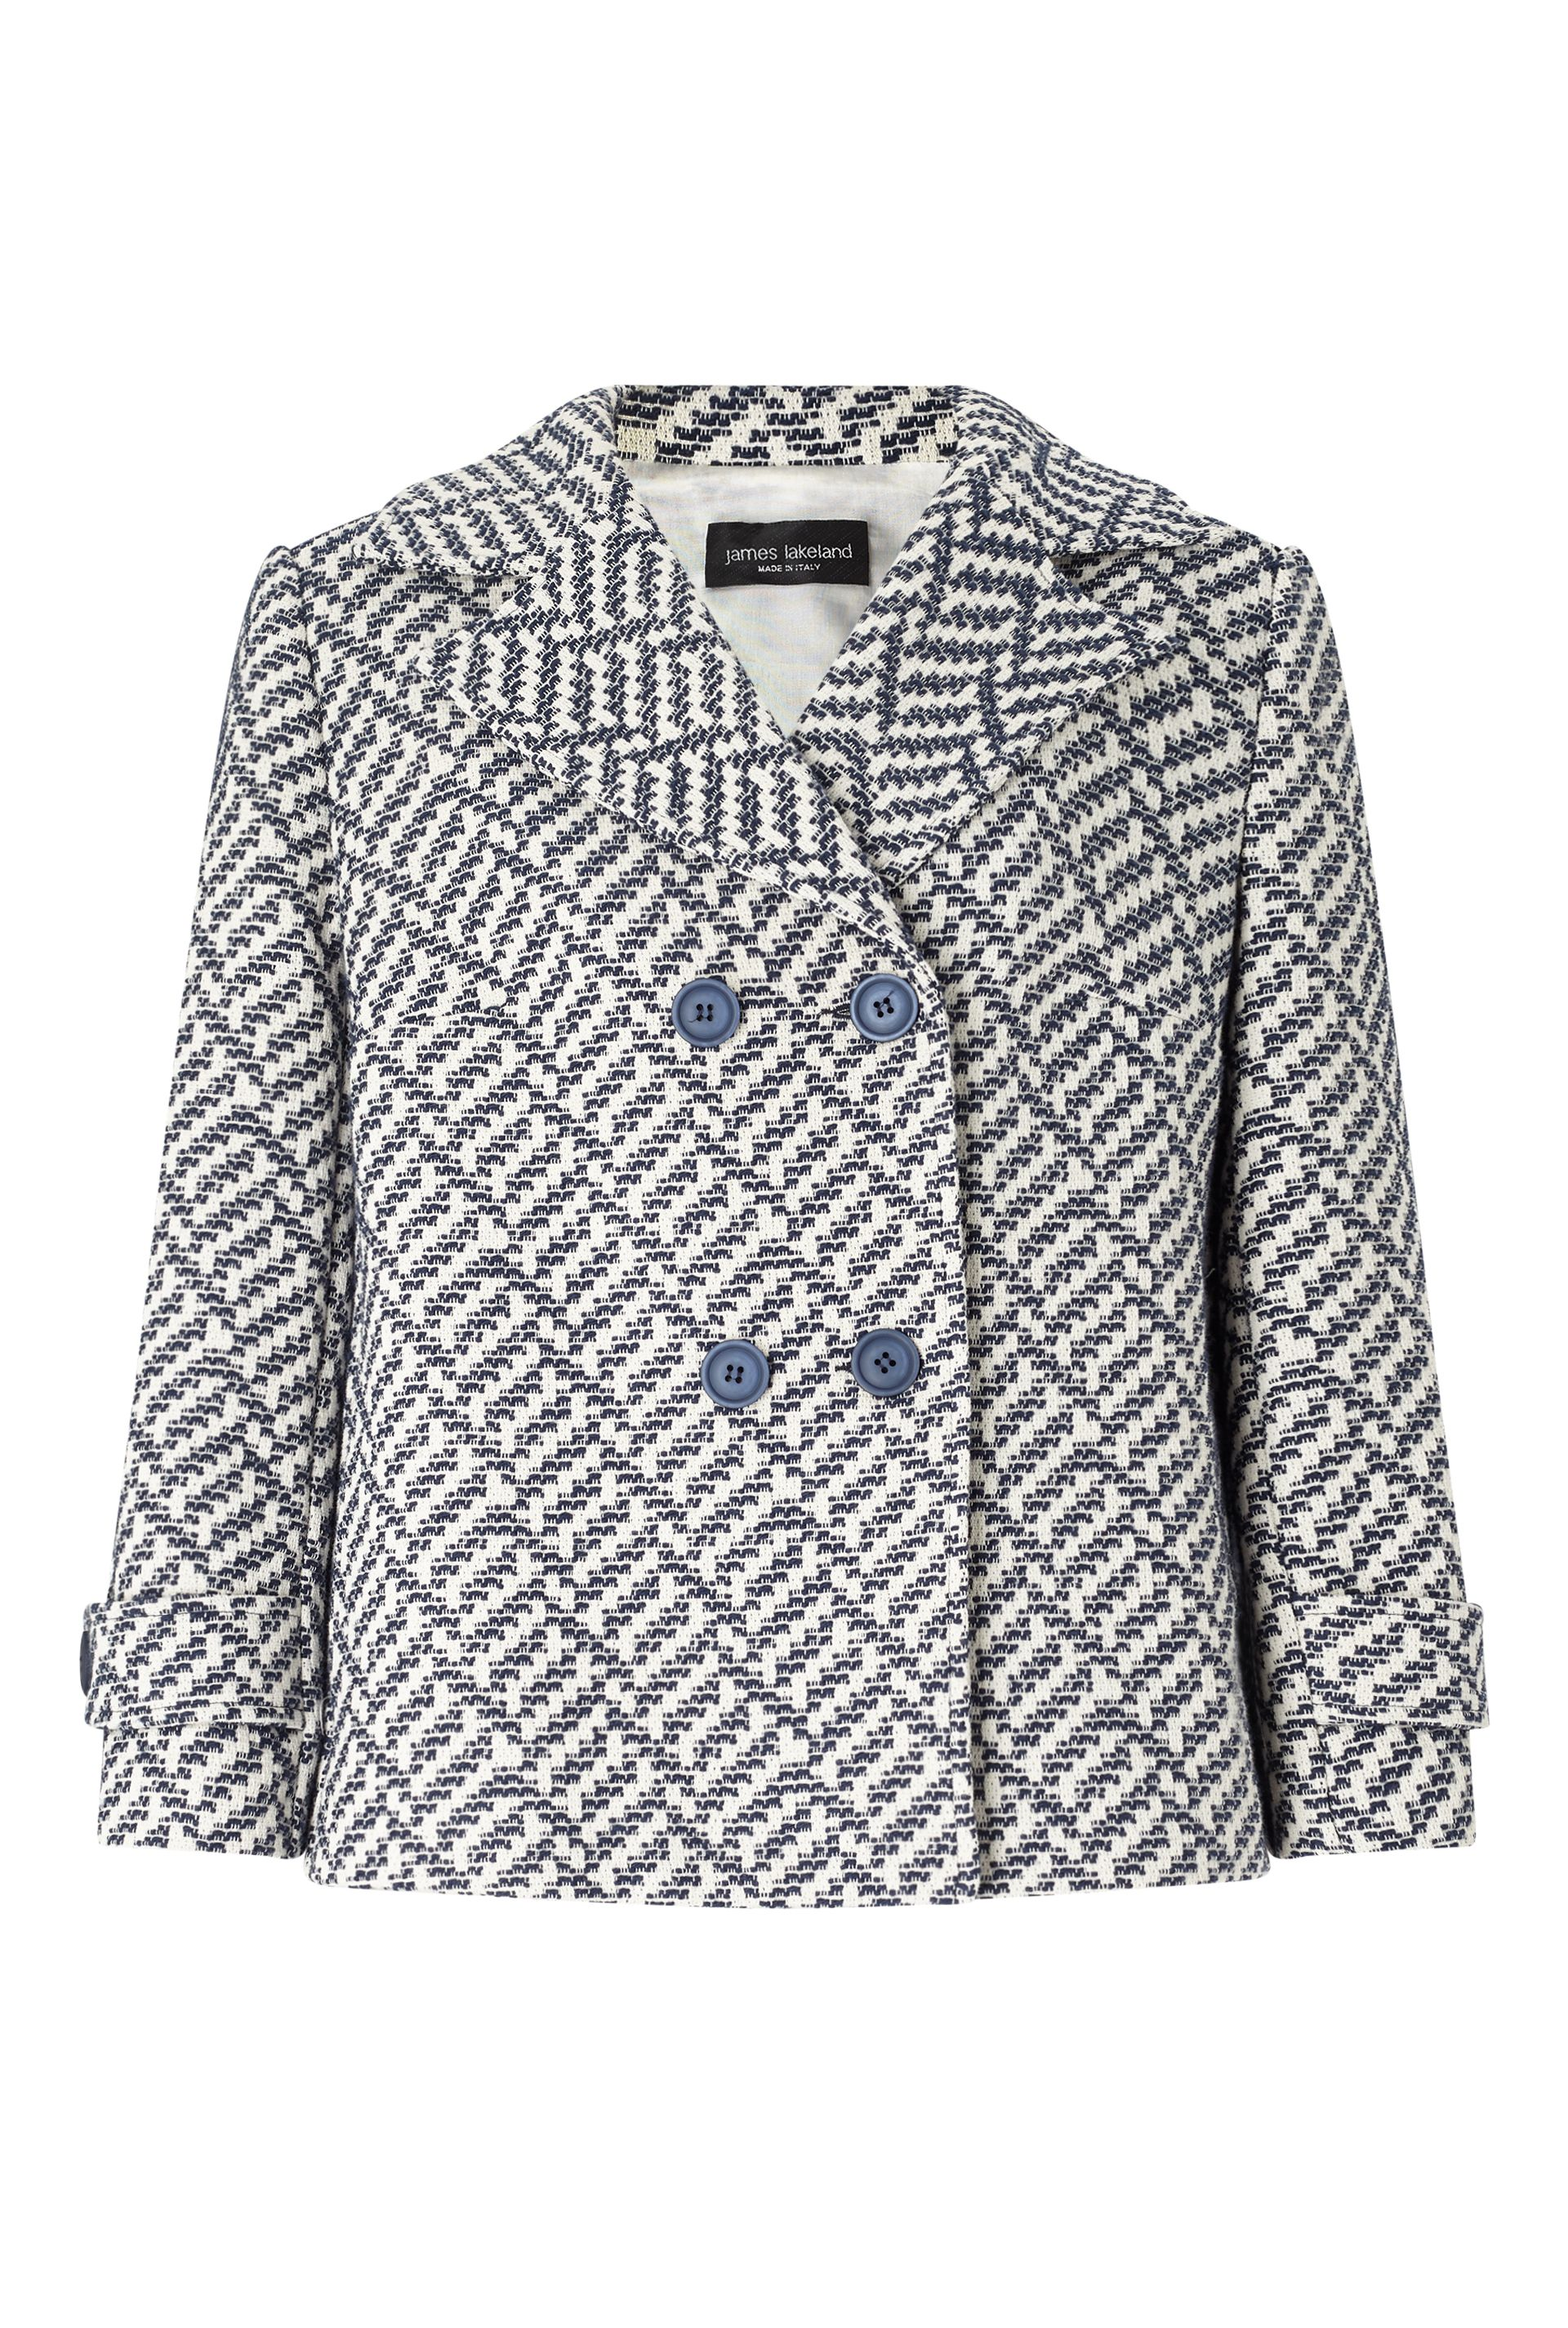 James Lakeland Double Breasted Jacket, White